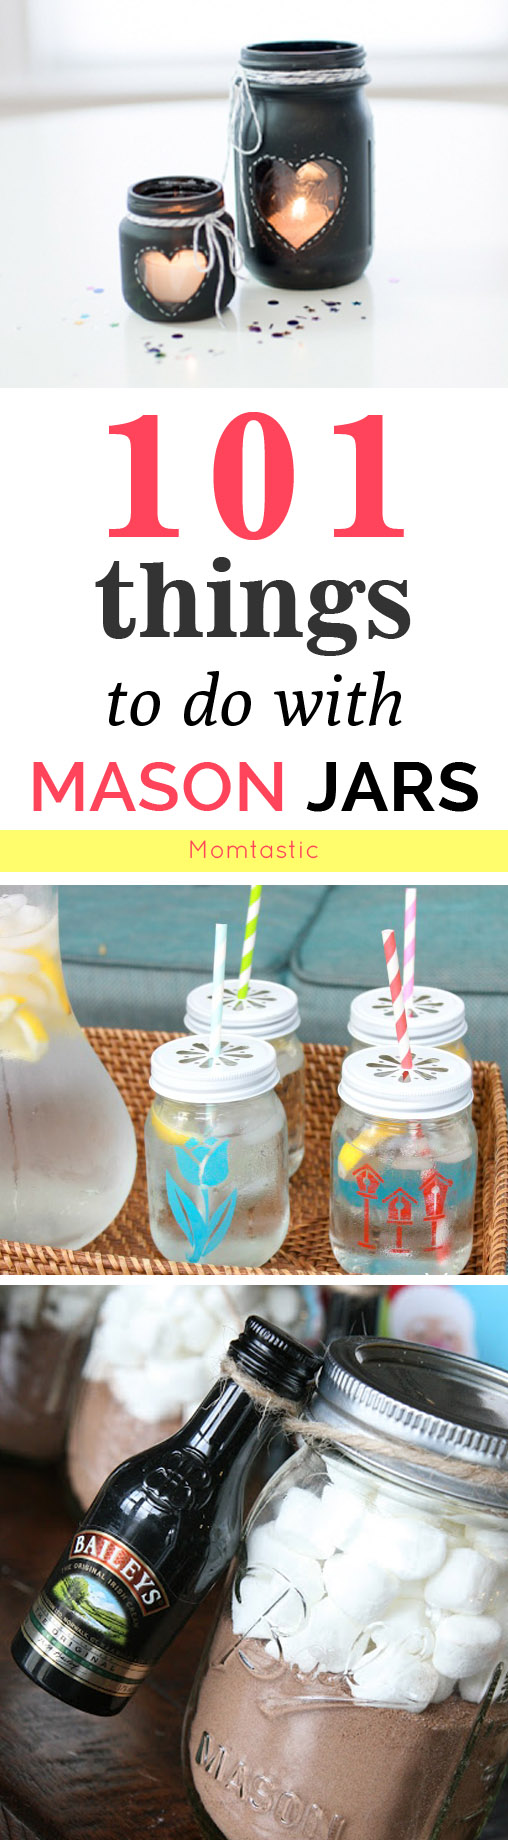 101_things_to_do_with_mason_jars